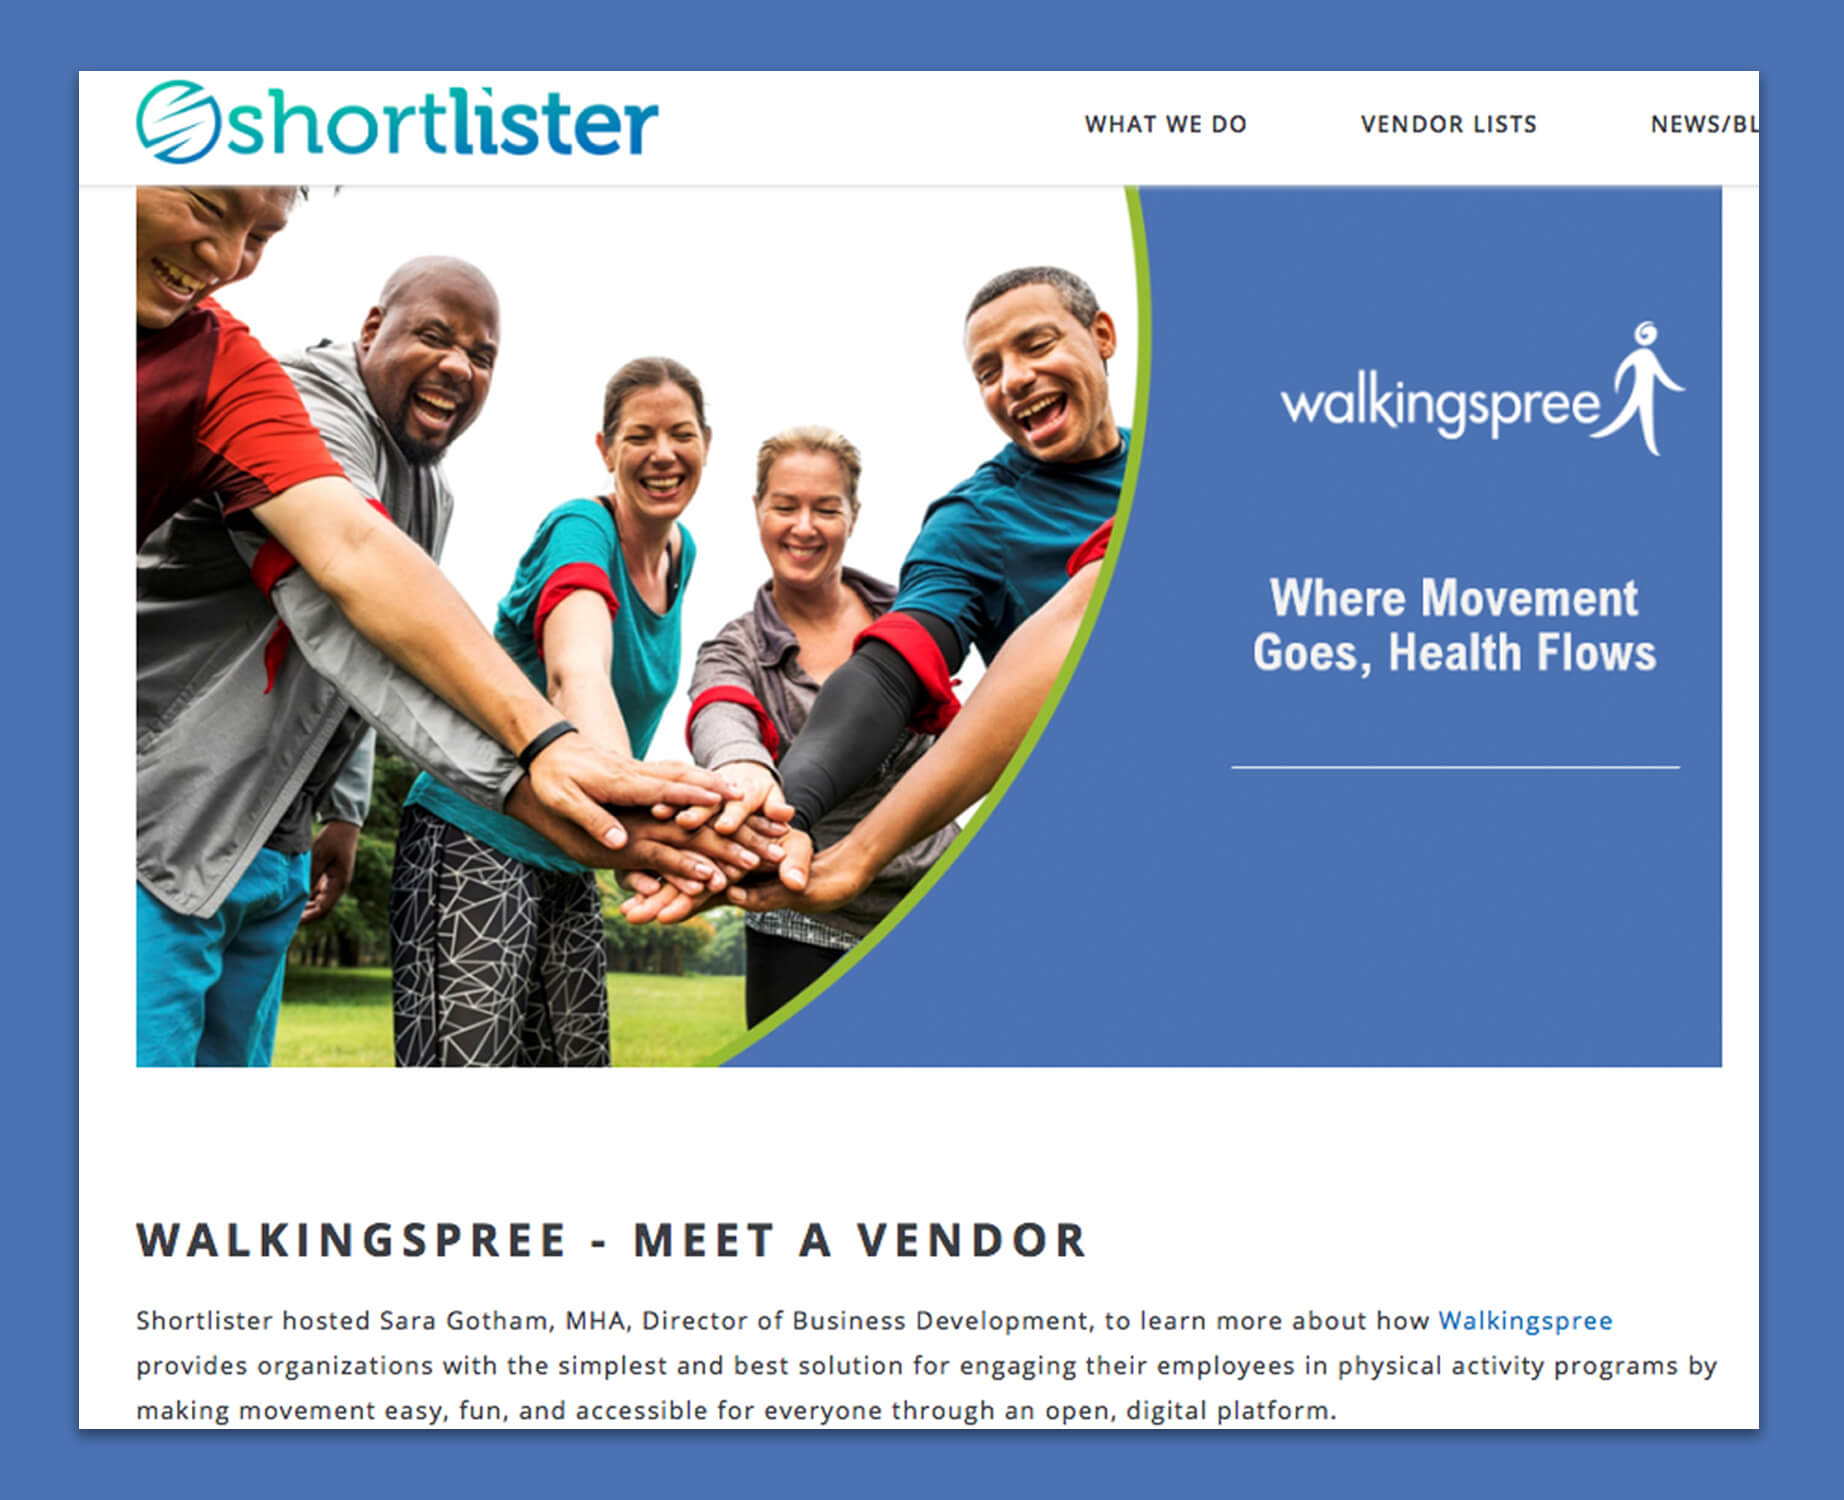 Shortlister, Meet a Vendor